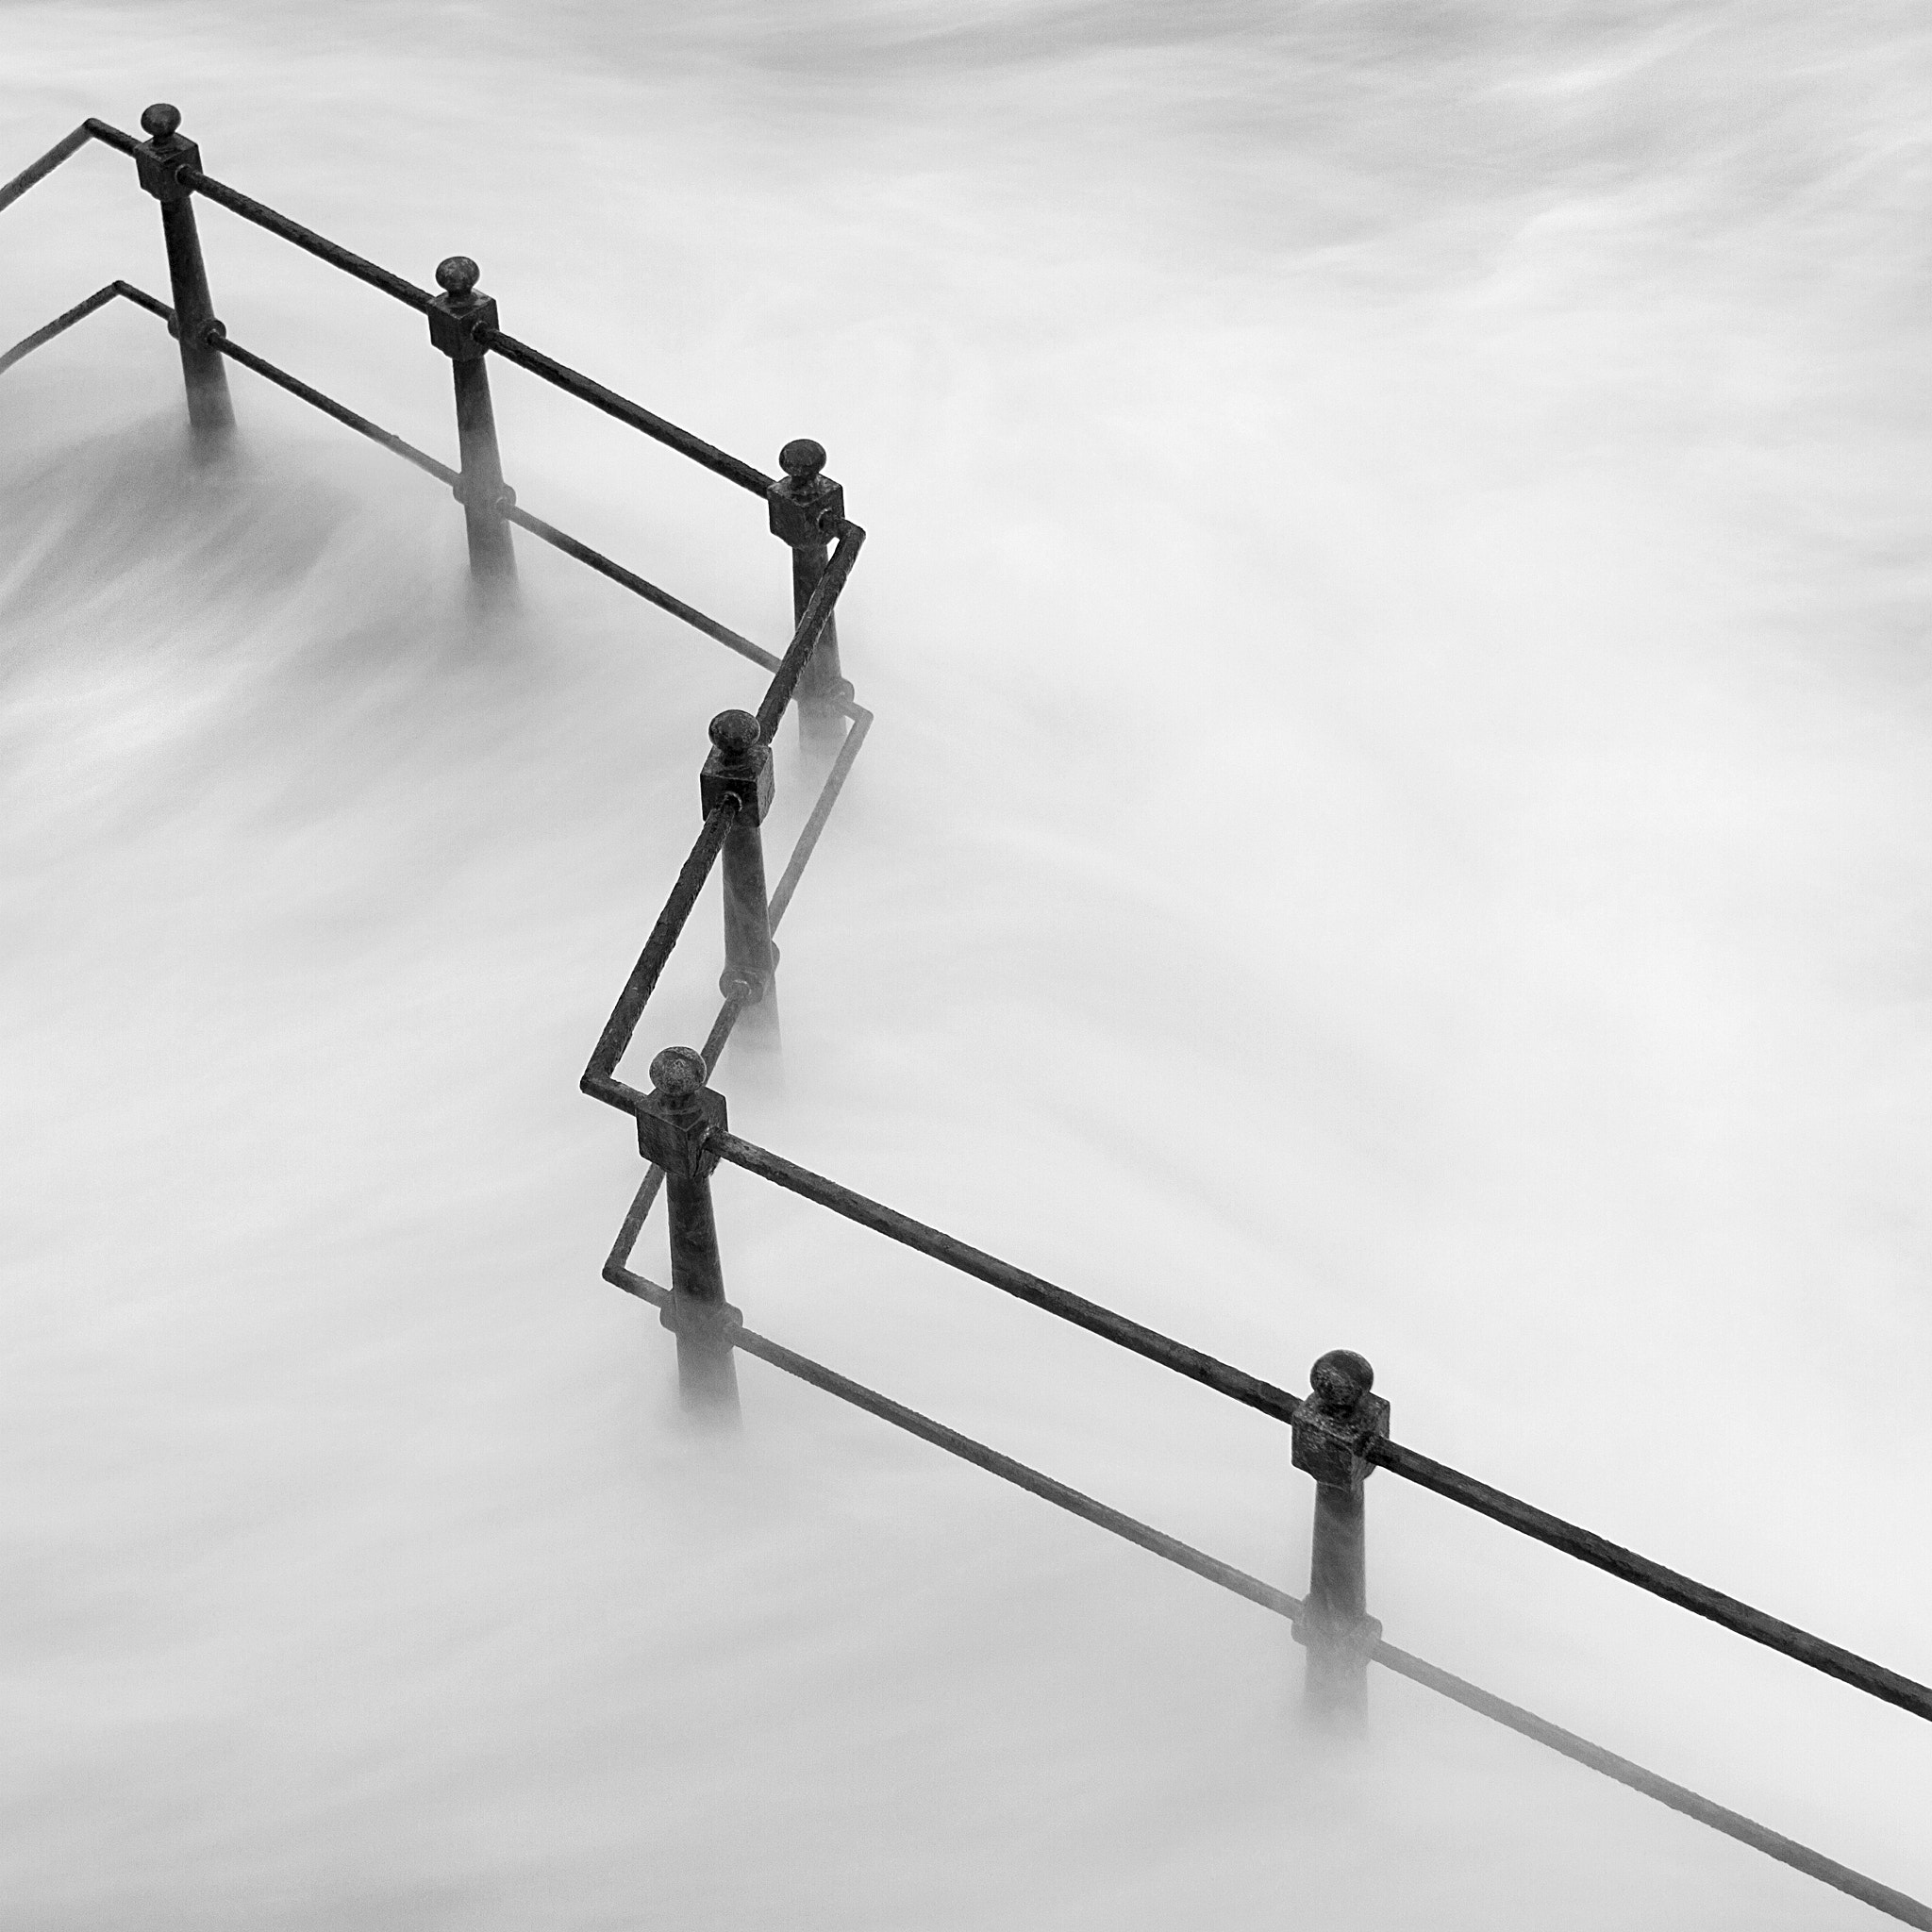 Photograph Railings by Sharon Harmeston on 500px